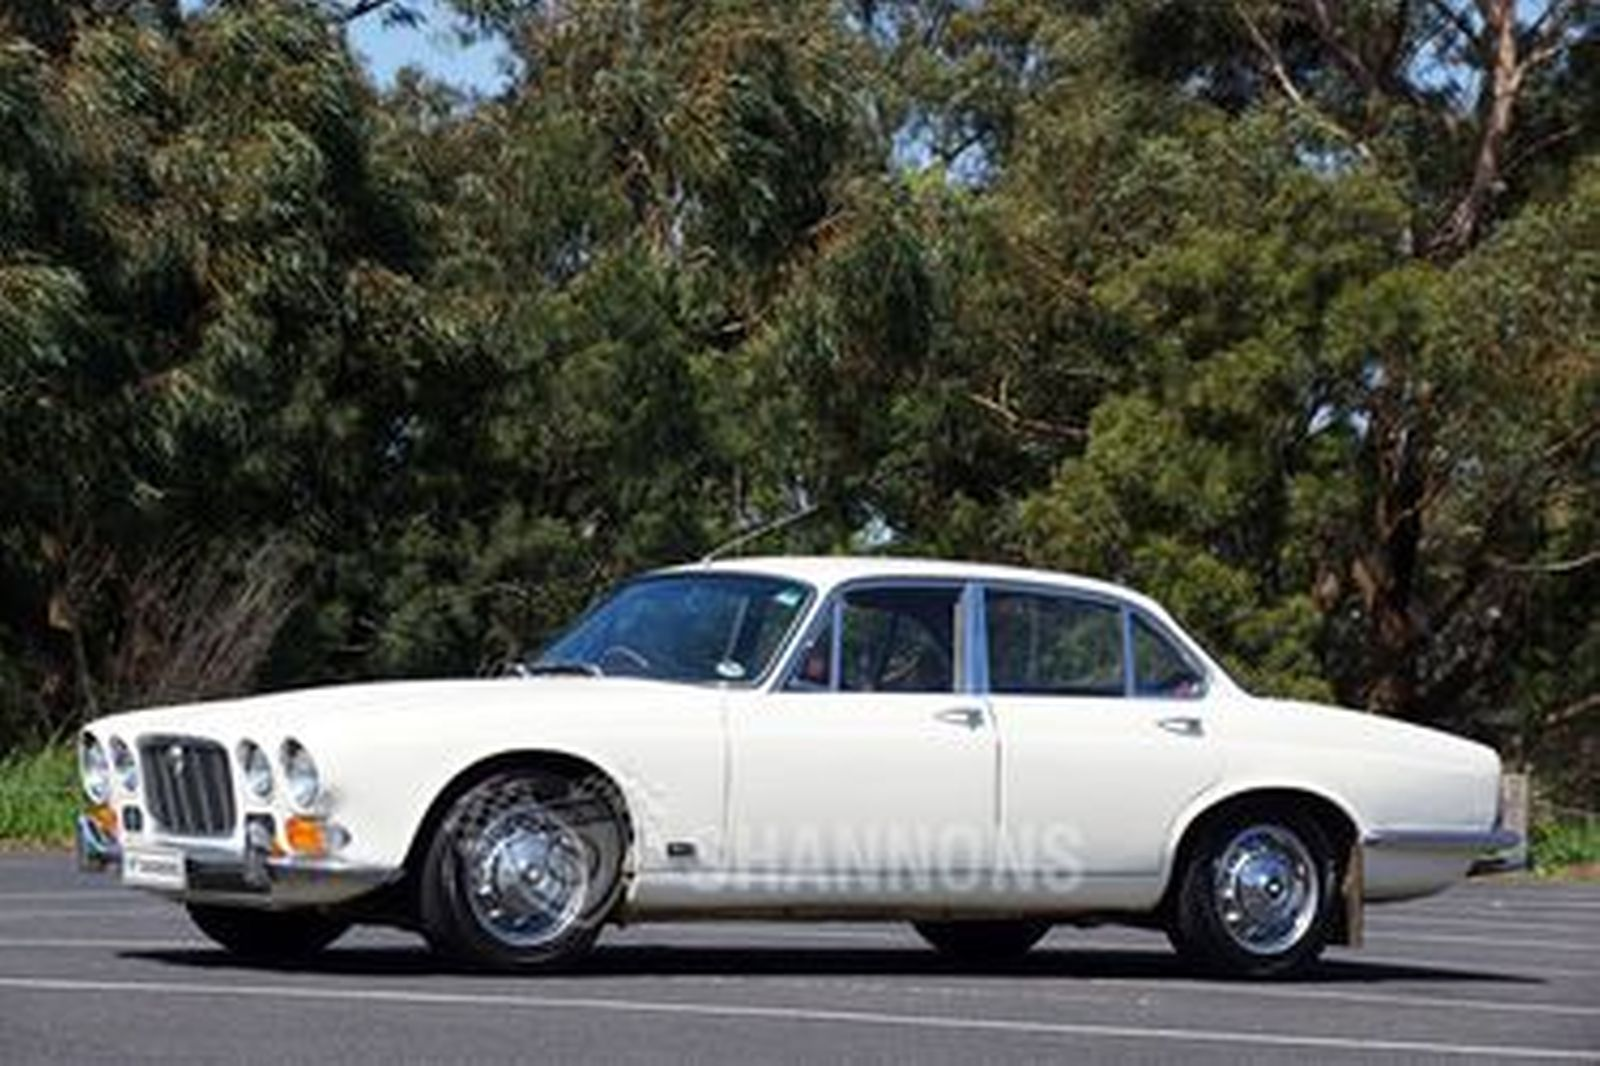 Jaguar XJ6 Series 1 Saloon